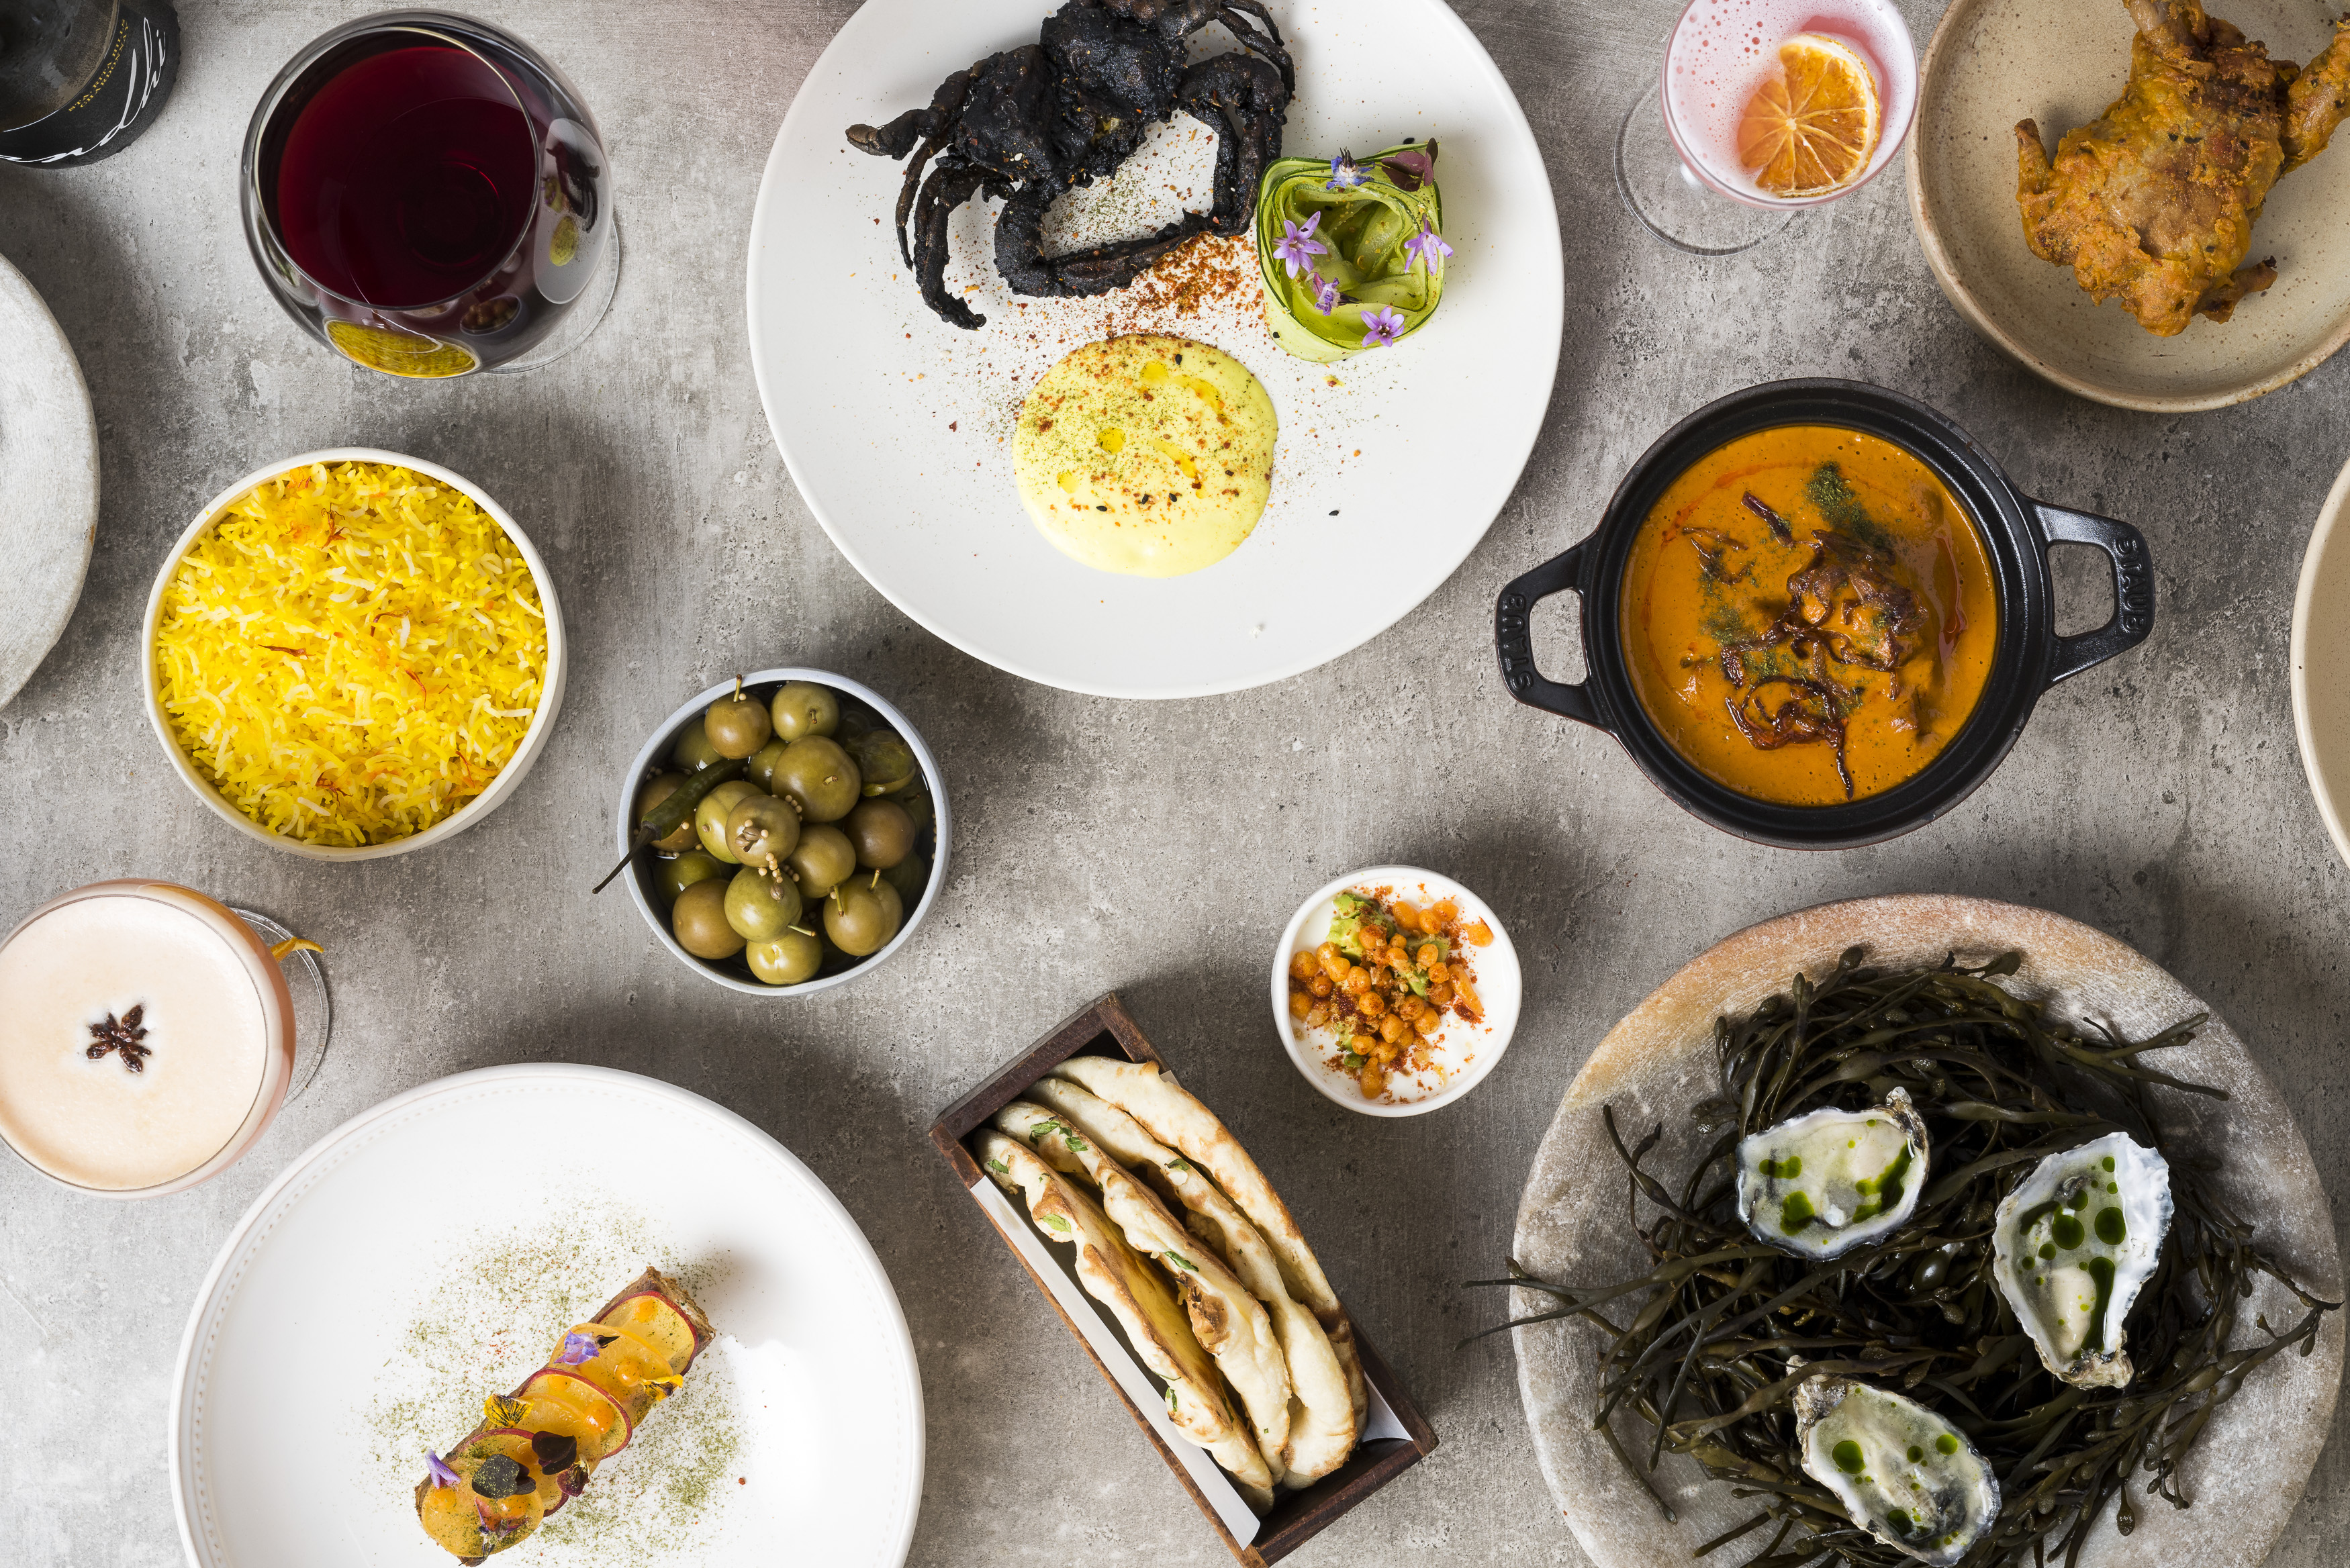 Randolph Row's Highly Anticipated Fine-Dining Indian Restaurant Opens Next Week